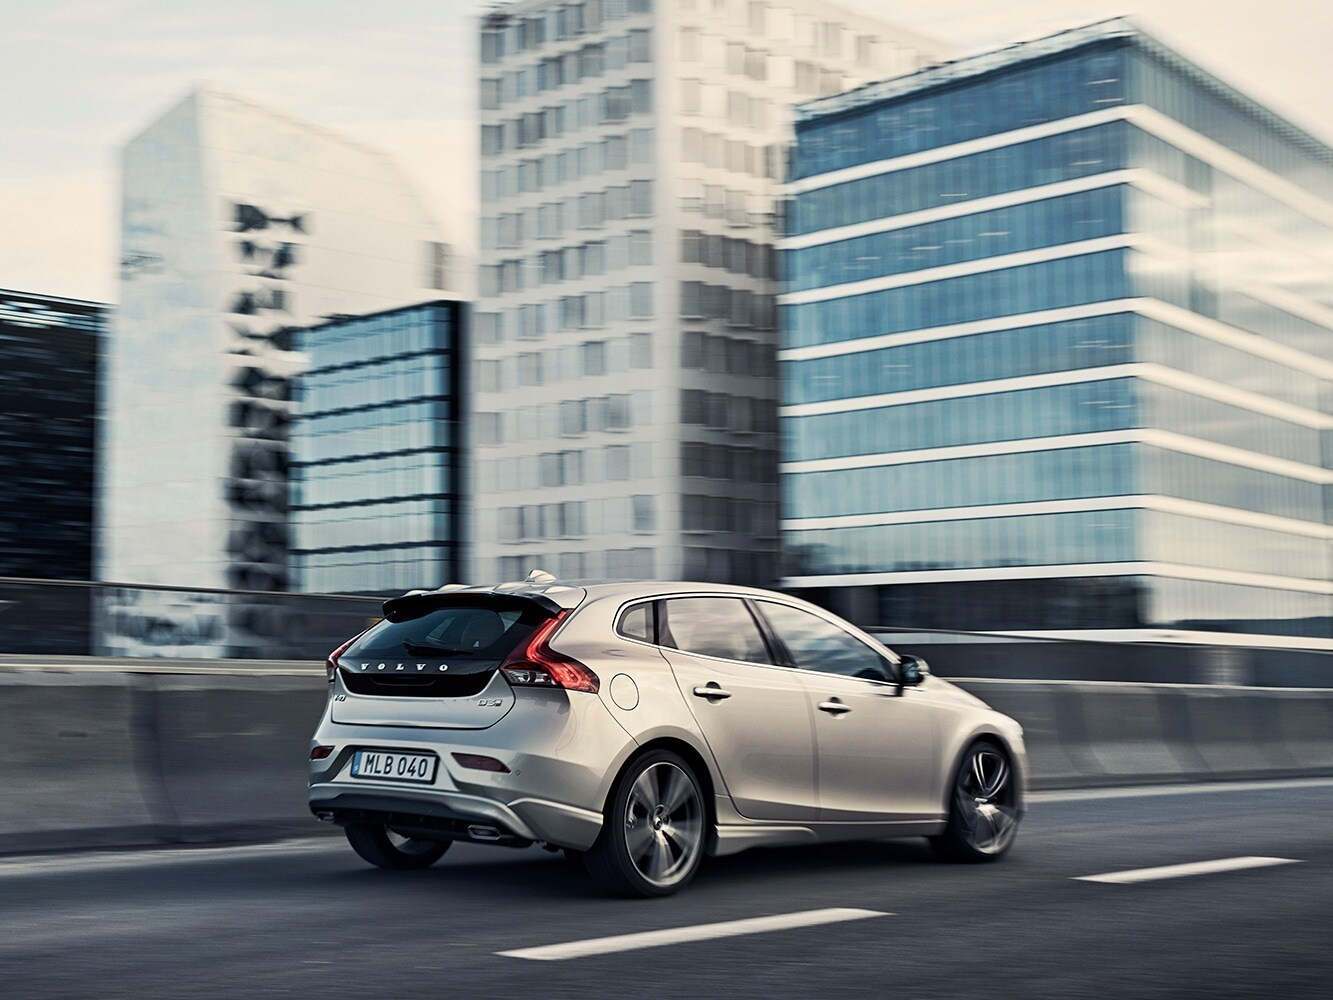 Back side view of Volvo V40 driving into the city on a highway with buildings in the background